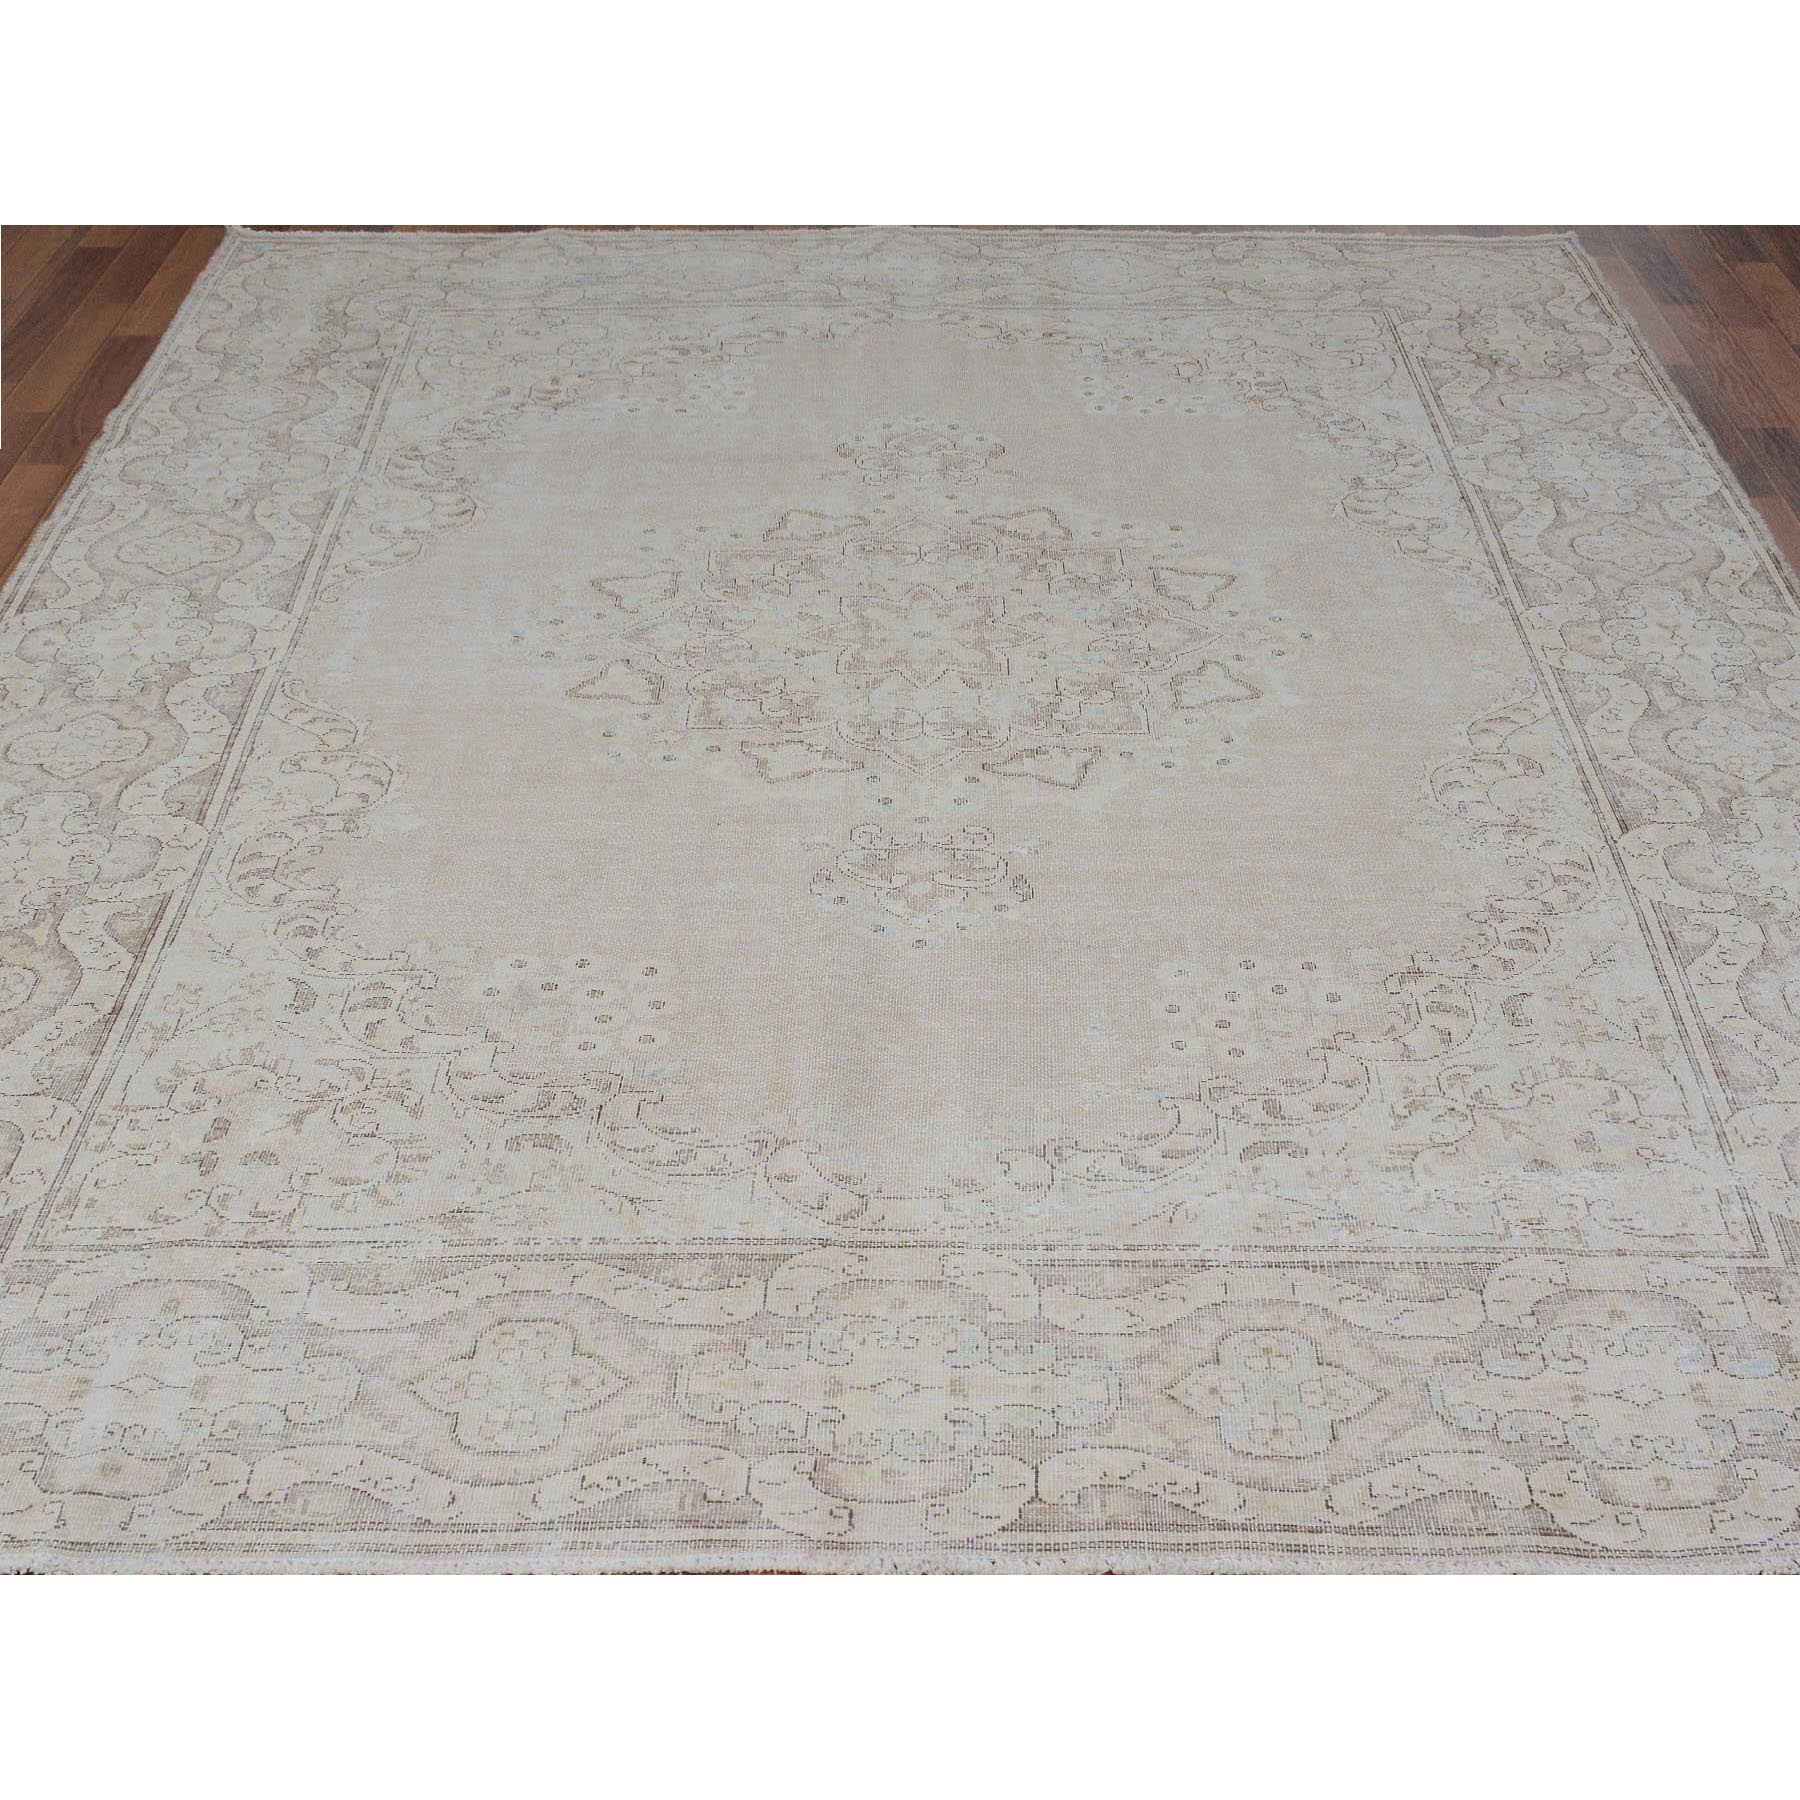 "8'x10'5"" Beige Washed Out and Worn Down Vintage Persian Kerman Pure Wool Hand Knotted Oriental Rug"